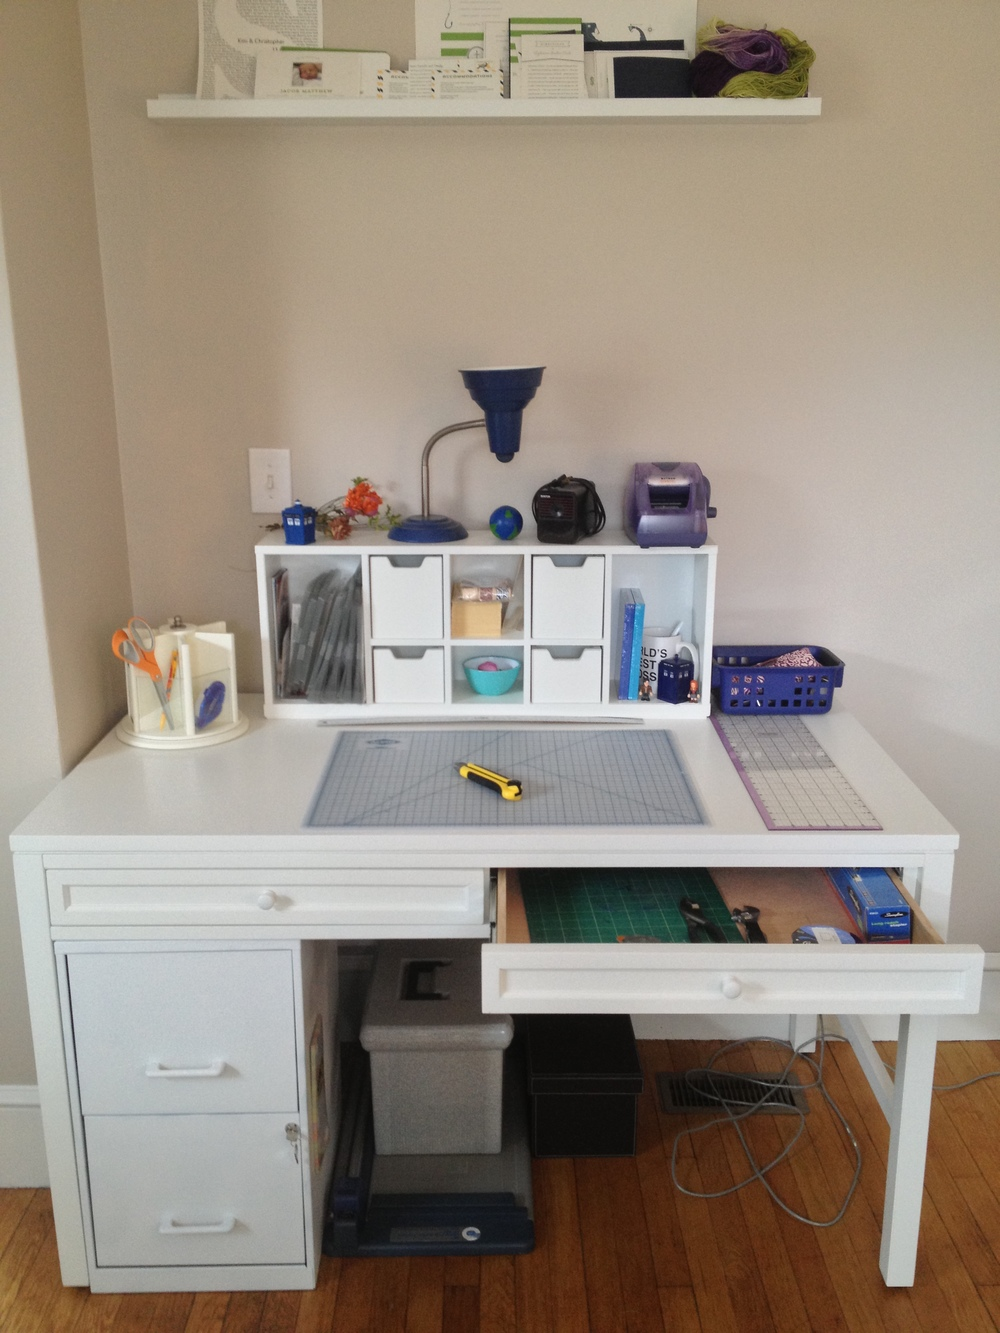 The desk I chose keeps with the look and feel of my office, but also fits properly and functions well